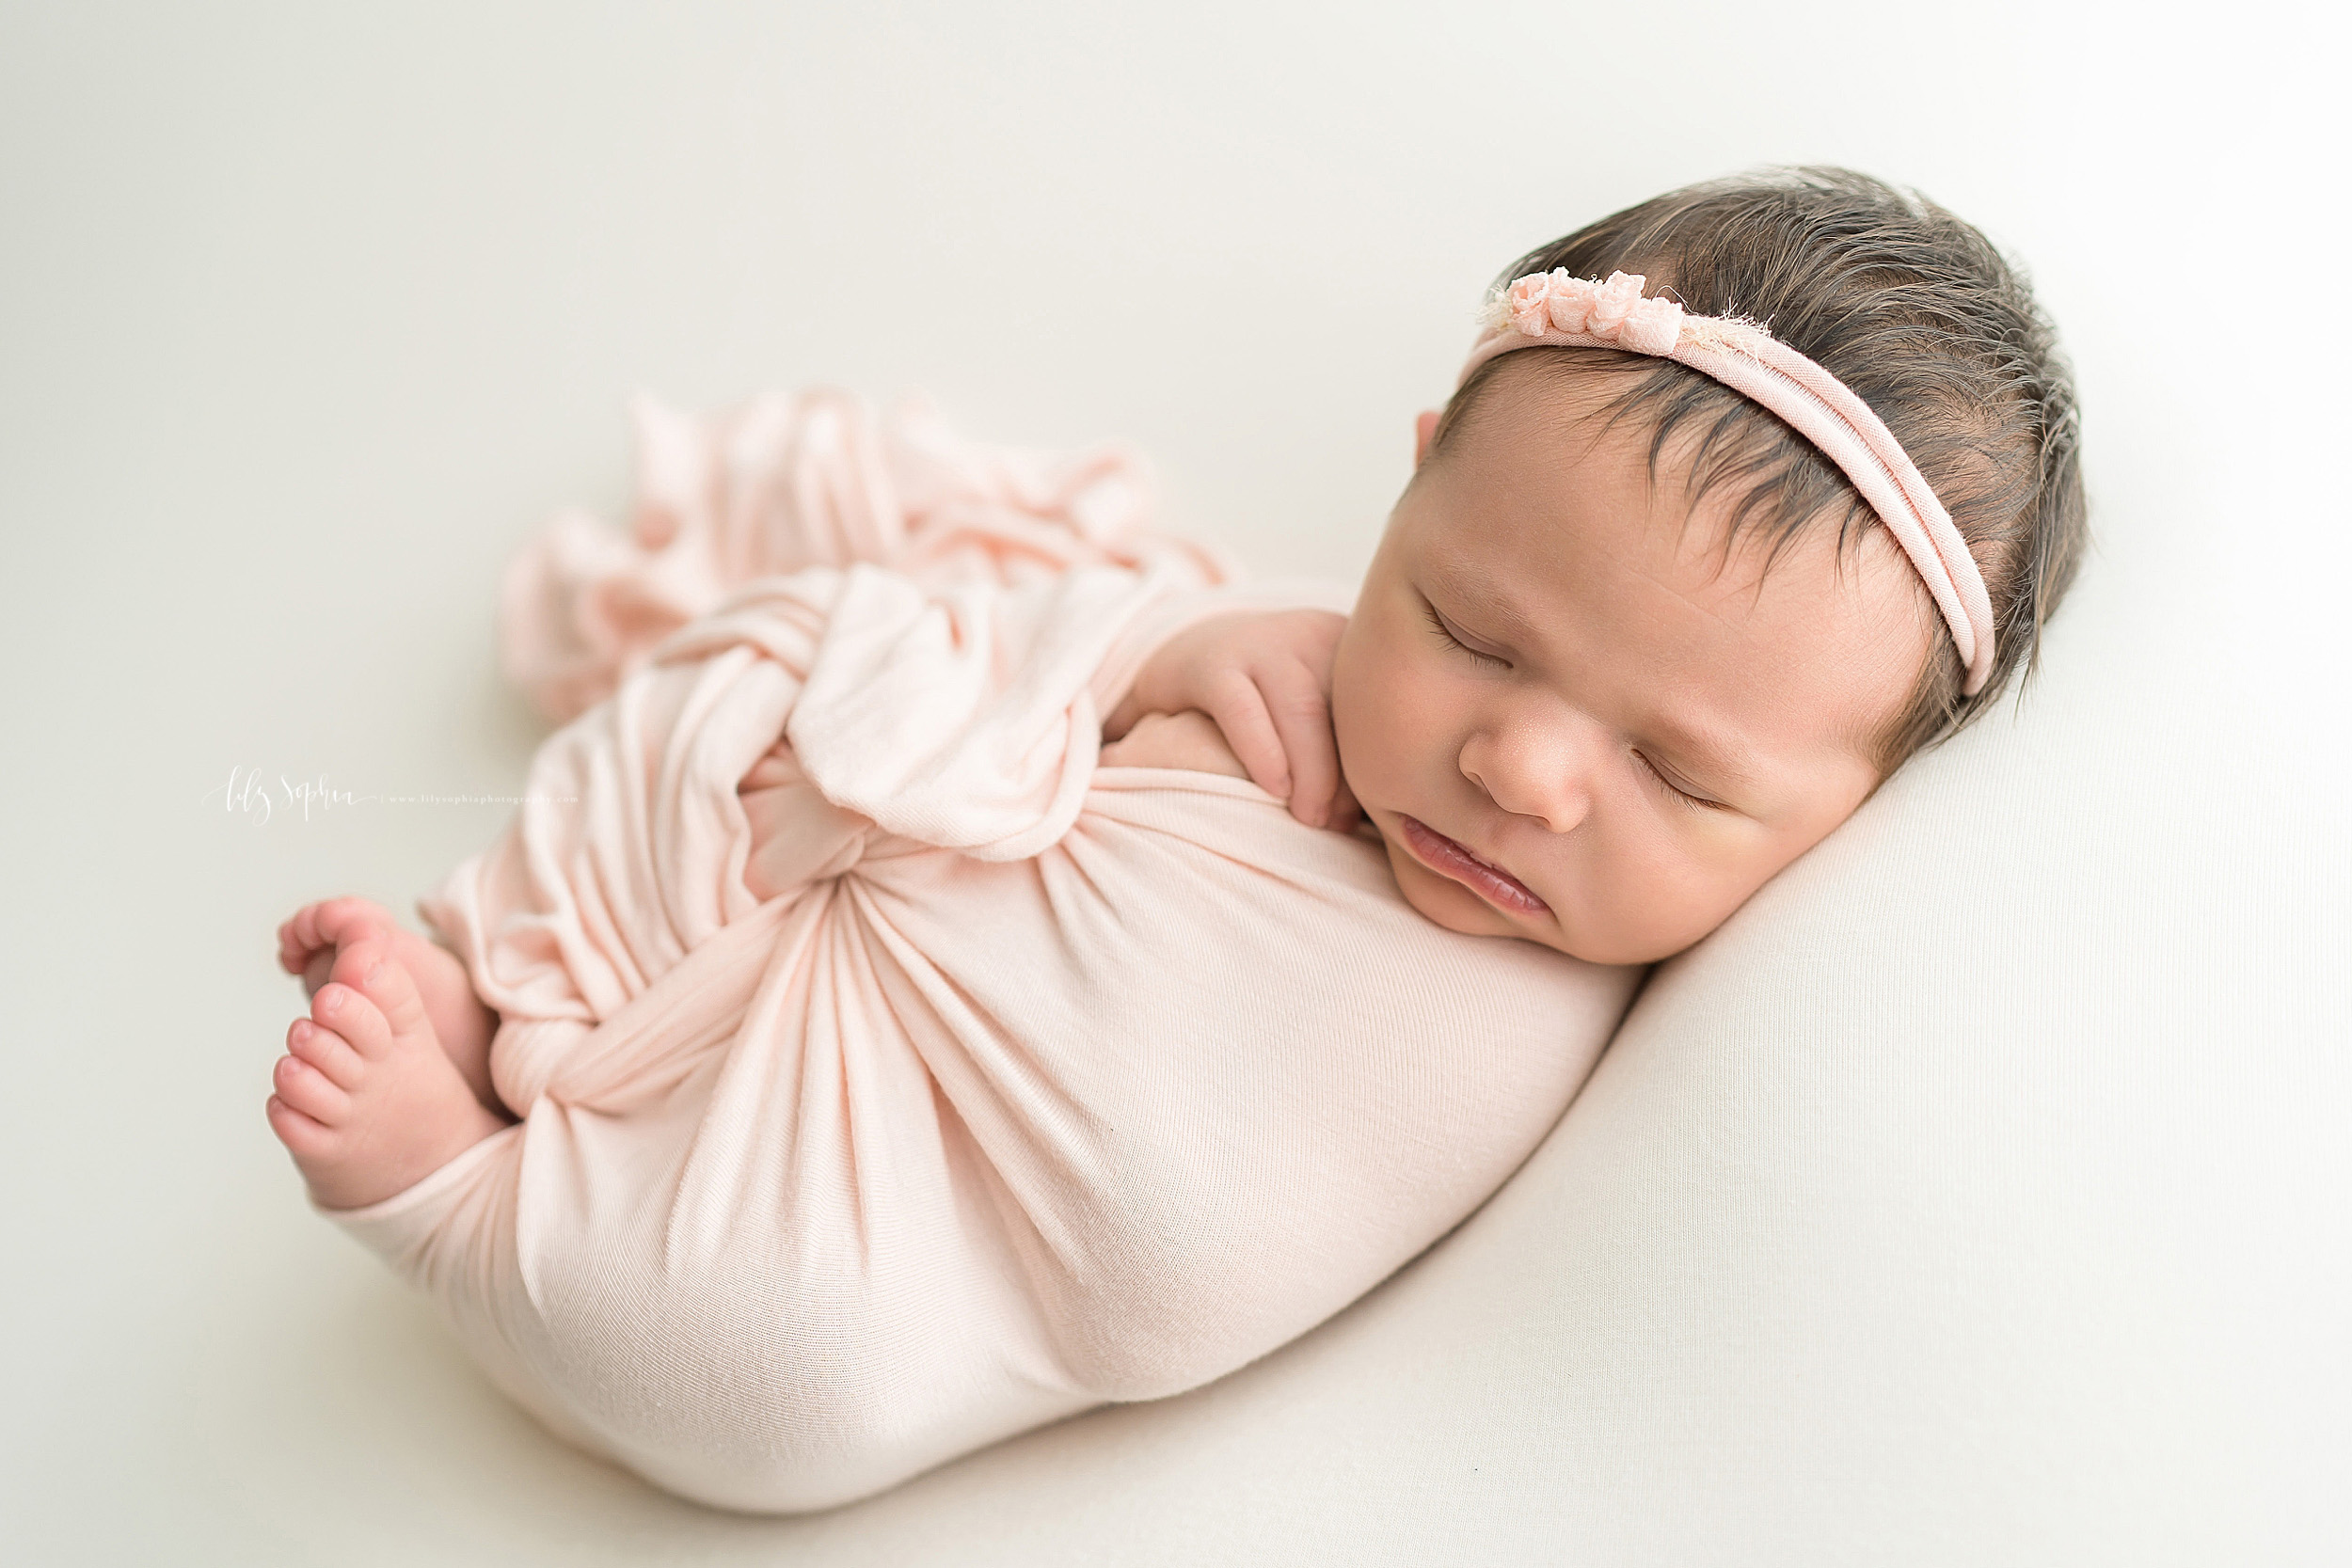 atlanta-roswell-brookhaven-sandy-springs-buckhead-virginia-highlands-west-end-decatur-lily-sophia-photography-studio-newborn-baby-girl-family-pictures_1011.jpg